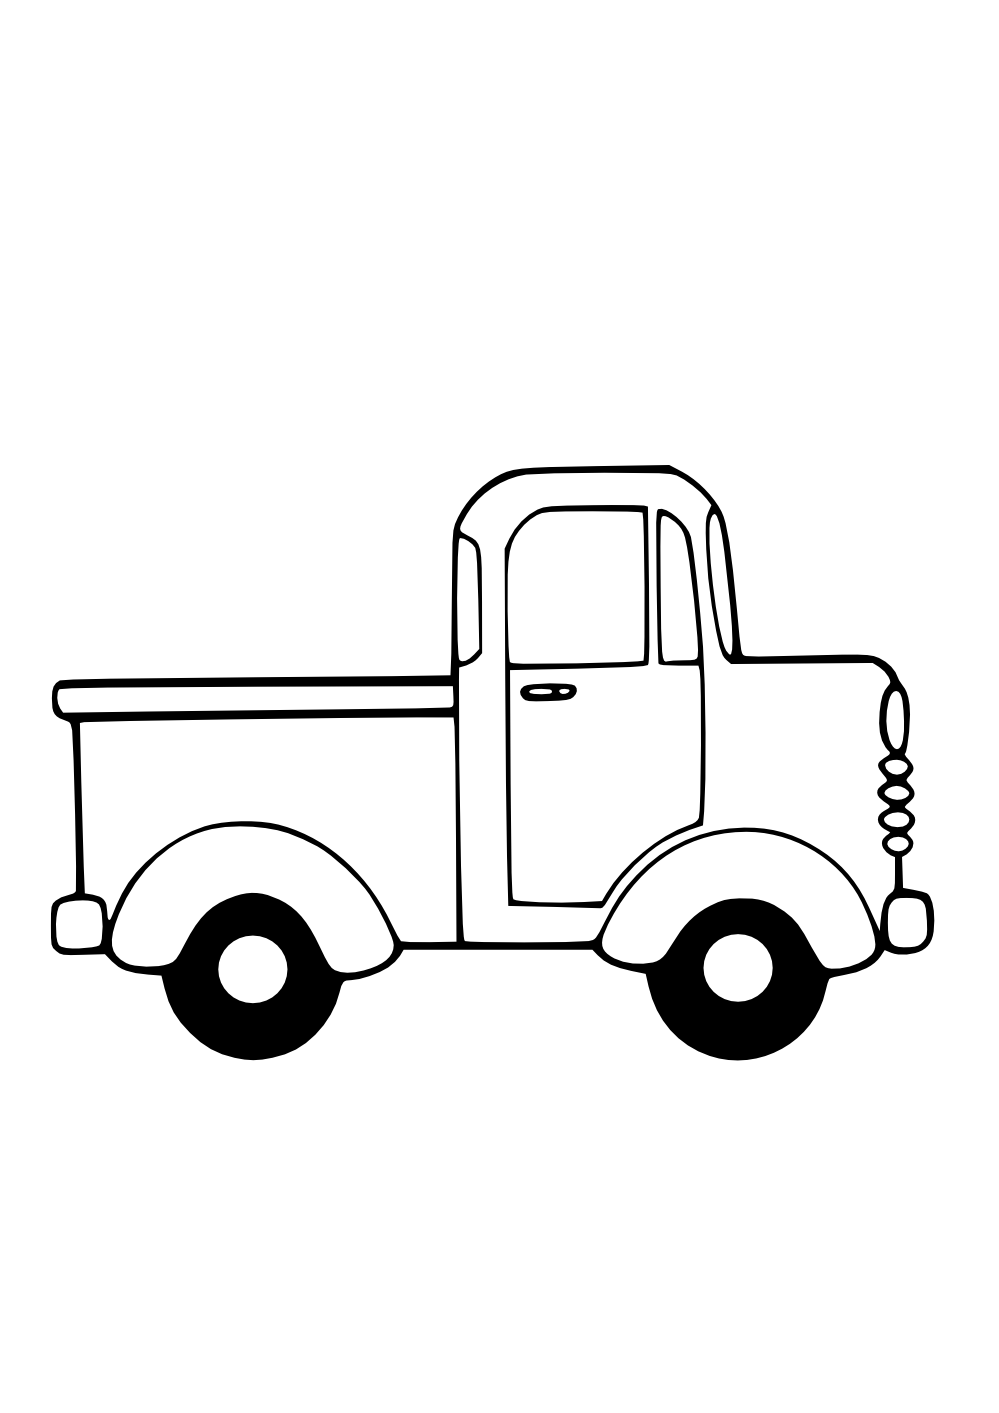 clipart black and white download Bullet clipart black and white. Truck panda free images.